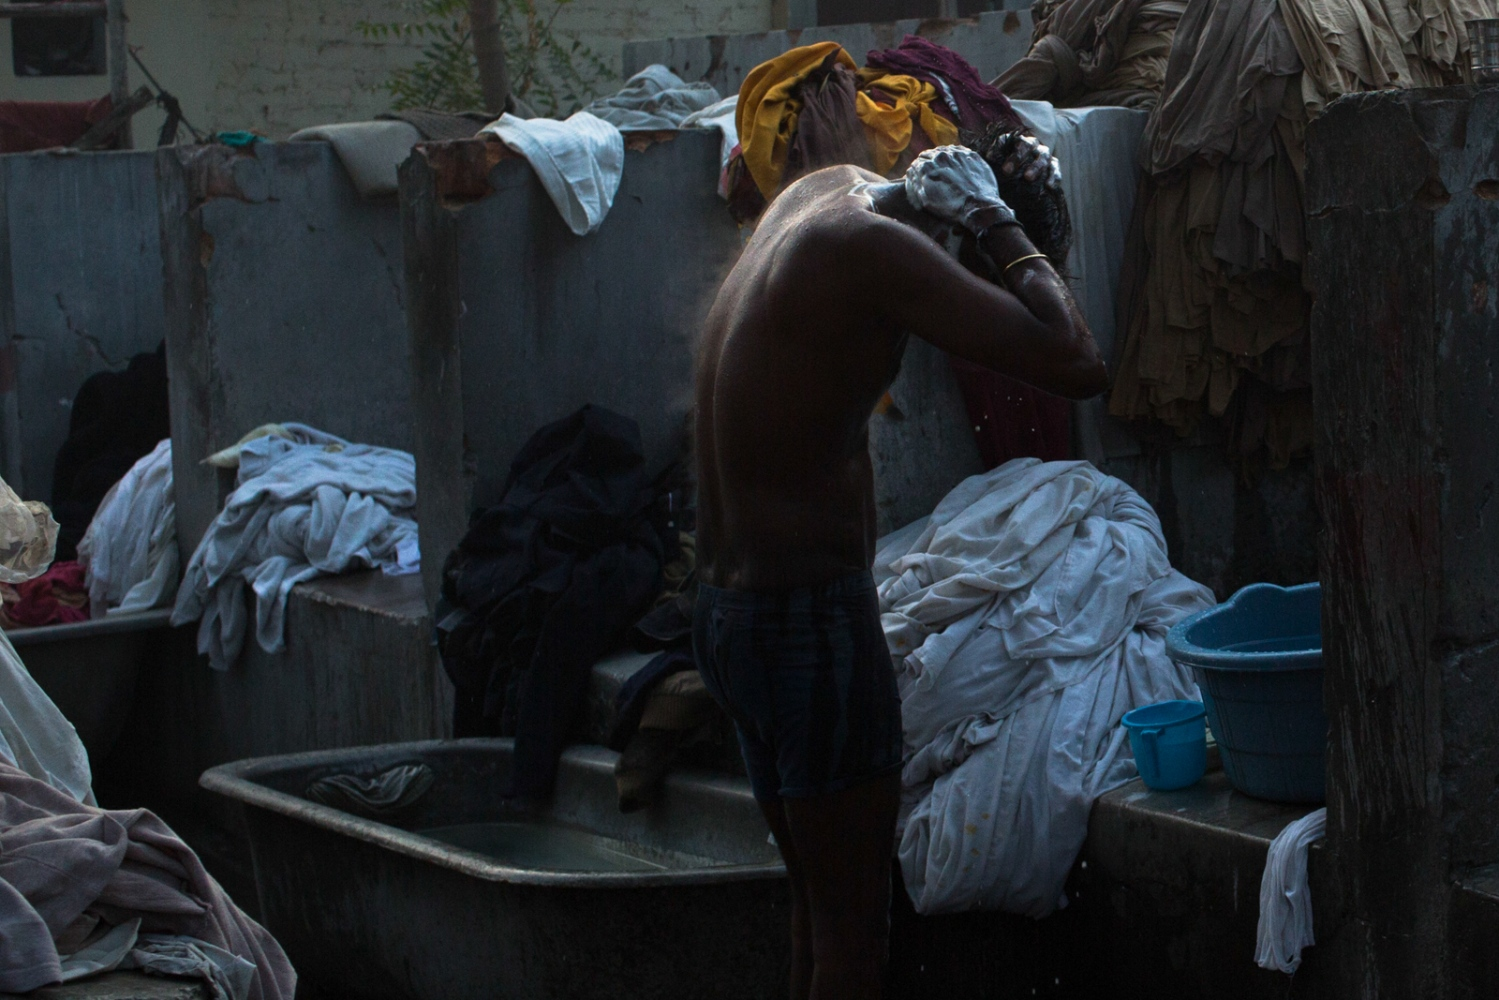 Indian washerman Dharmraj Kumar, 23, who lives and works at a dhobi ghat outdoor laundry bathes before starting work in New Delhi on February 10, 2015. With no water supply available in the homes at the ghat, residents bathe outdoors and collect water from pumps and taps for cooking and washing.